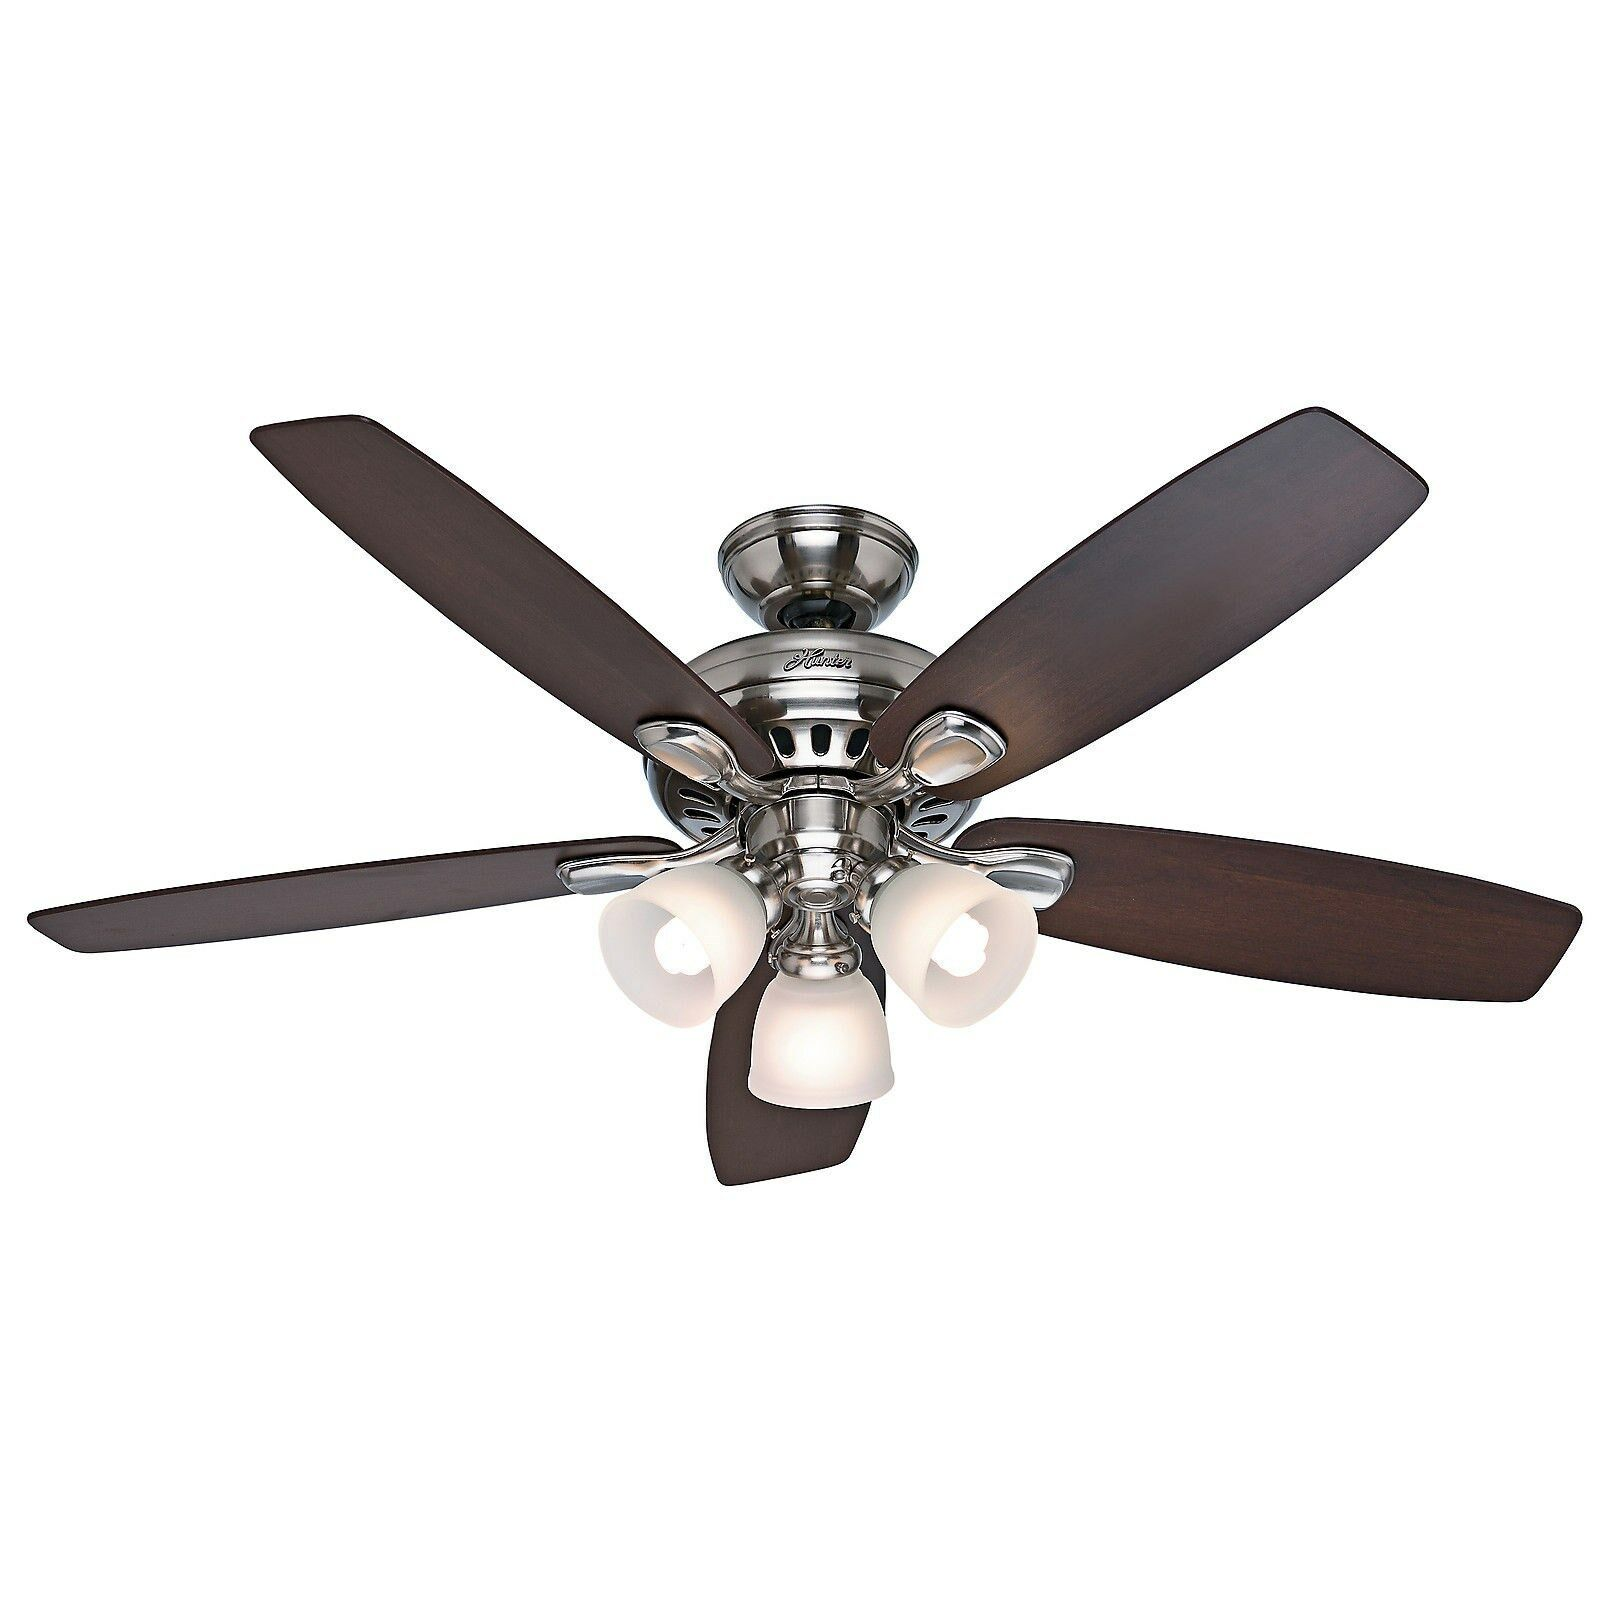 Hunter 52 Brushed Nickel Ceiling Fan with Light  Remote Control  5 Blade  eBay